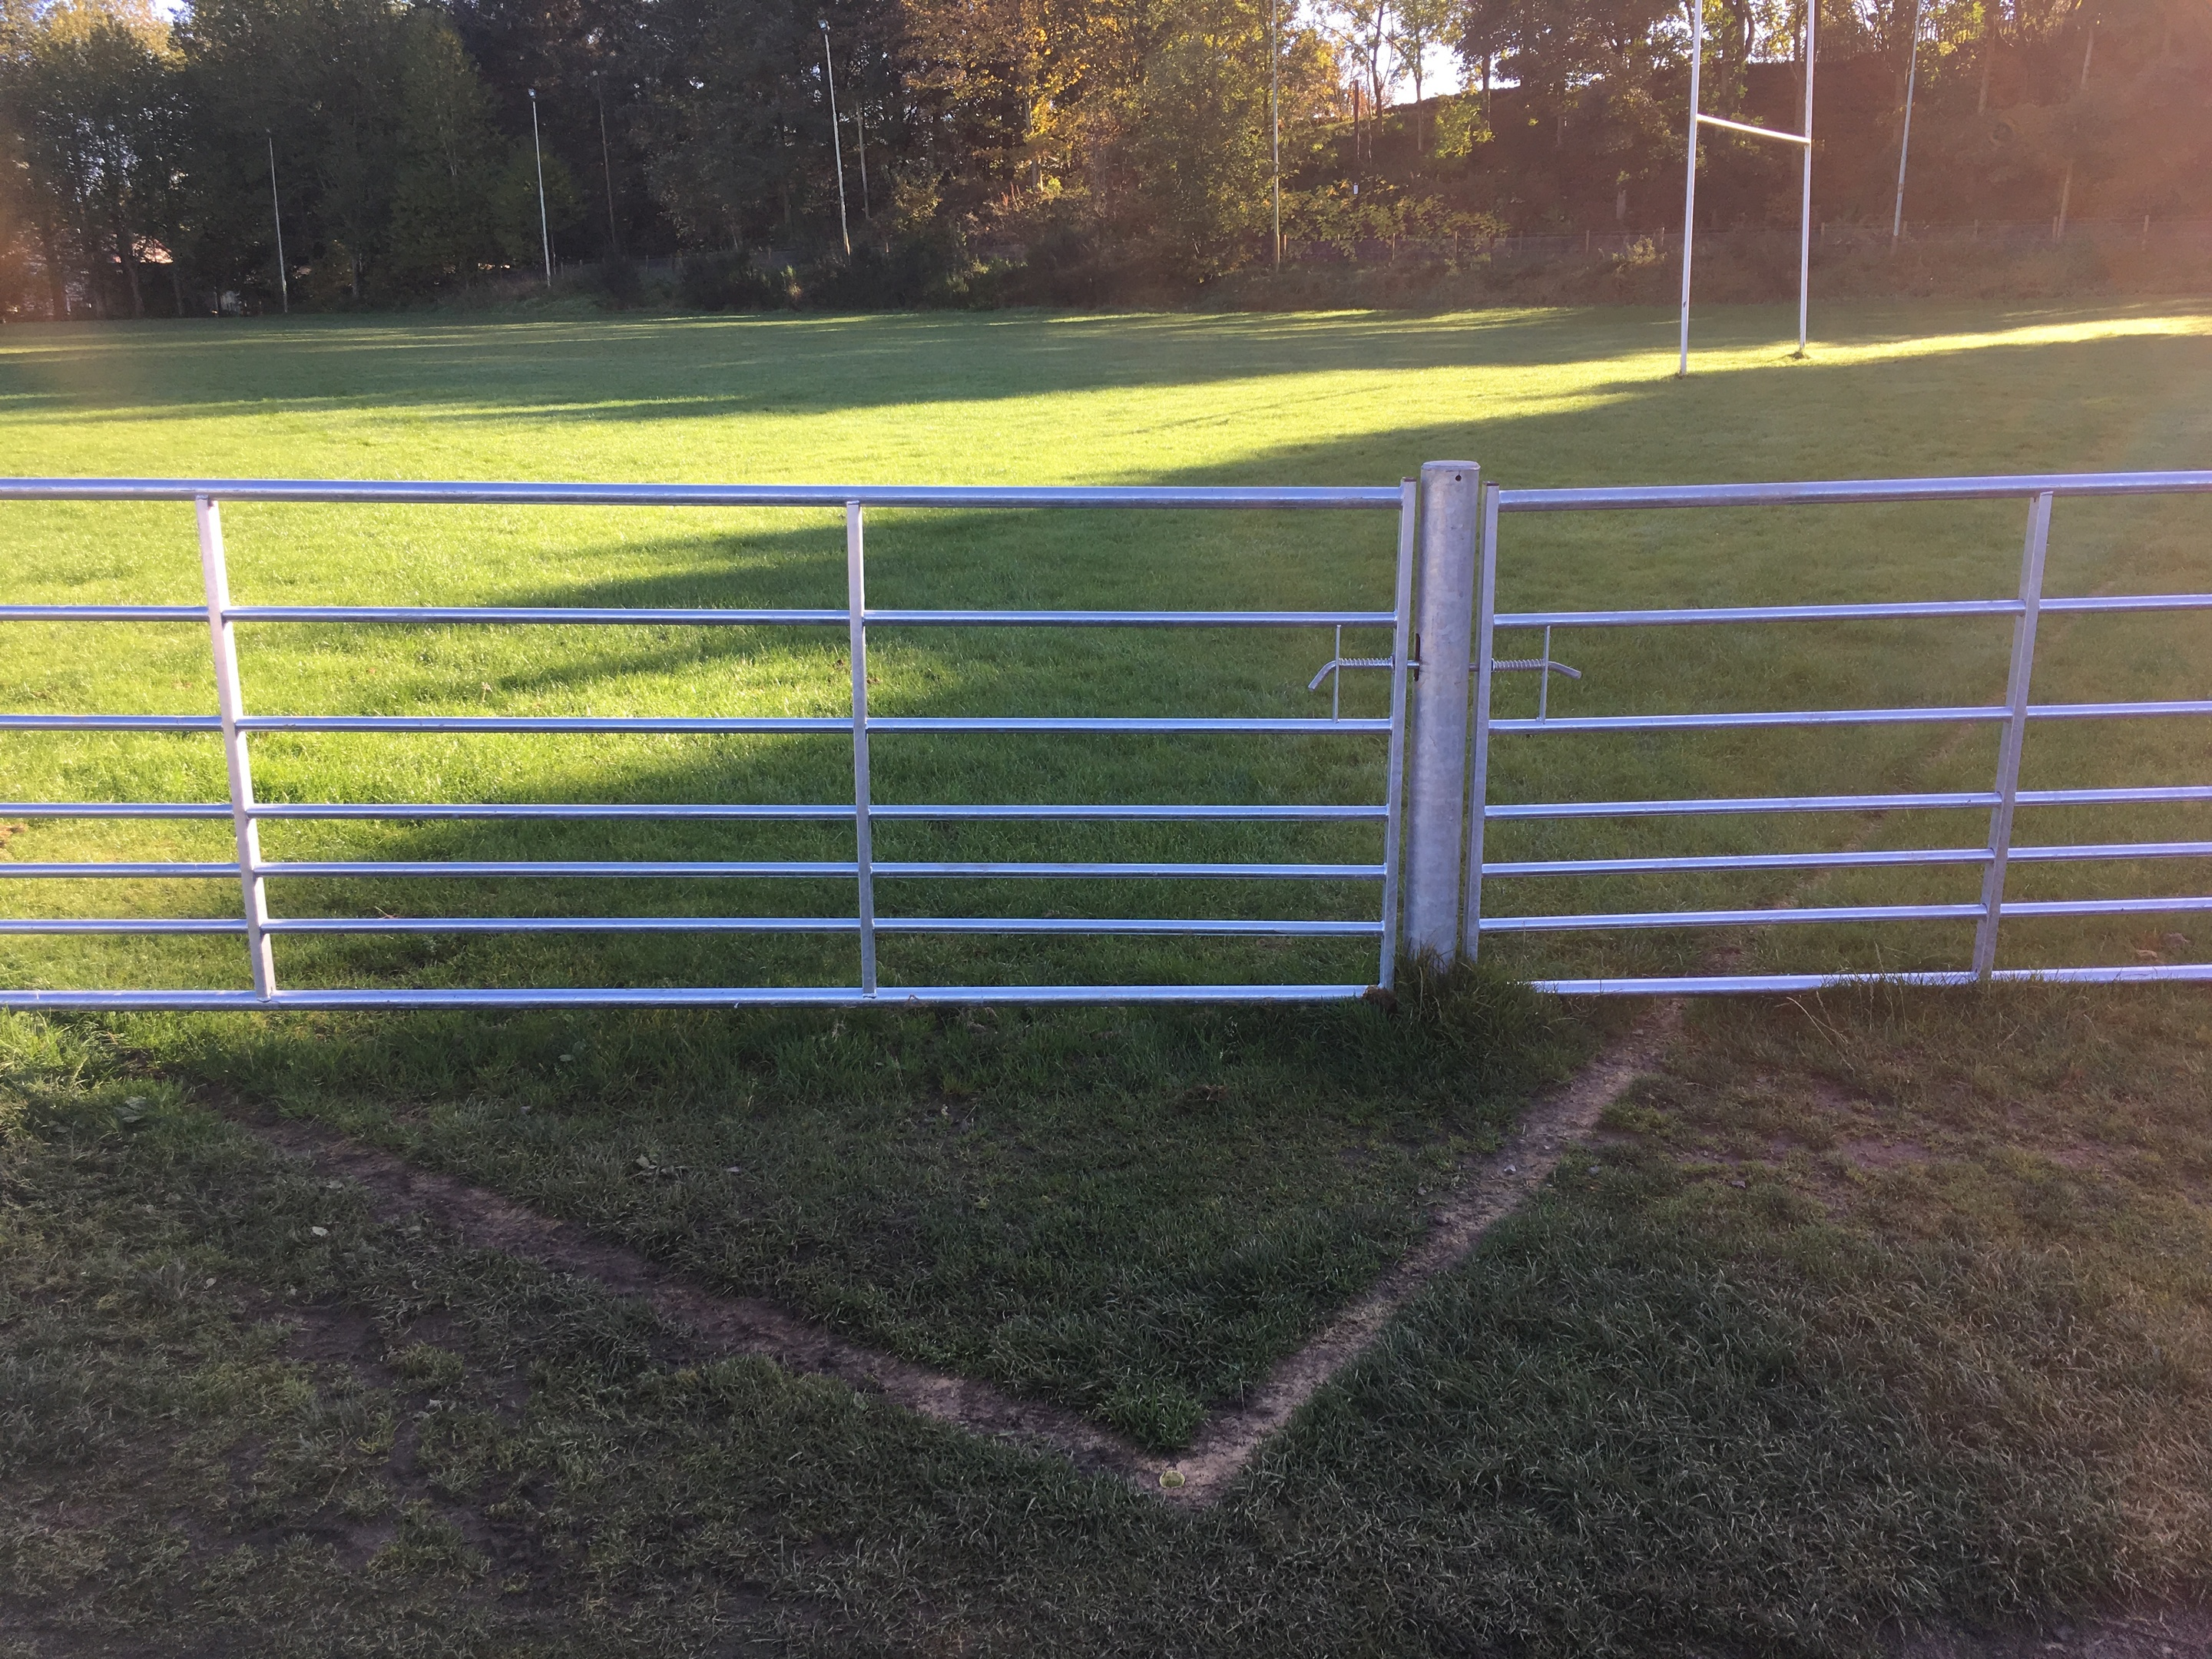 The gate which cuts across the rugby pitch at Inchmacoble Park